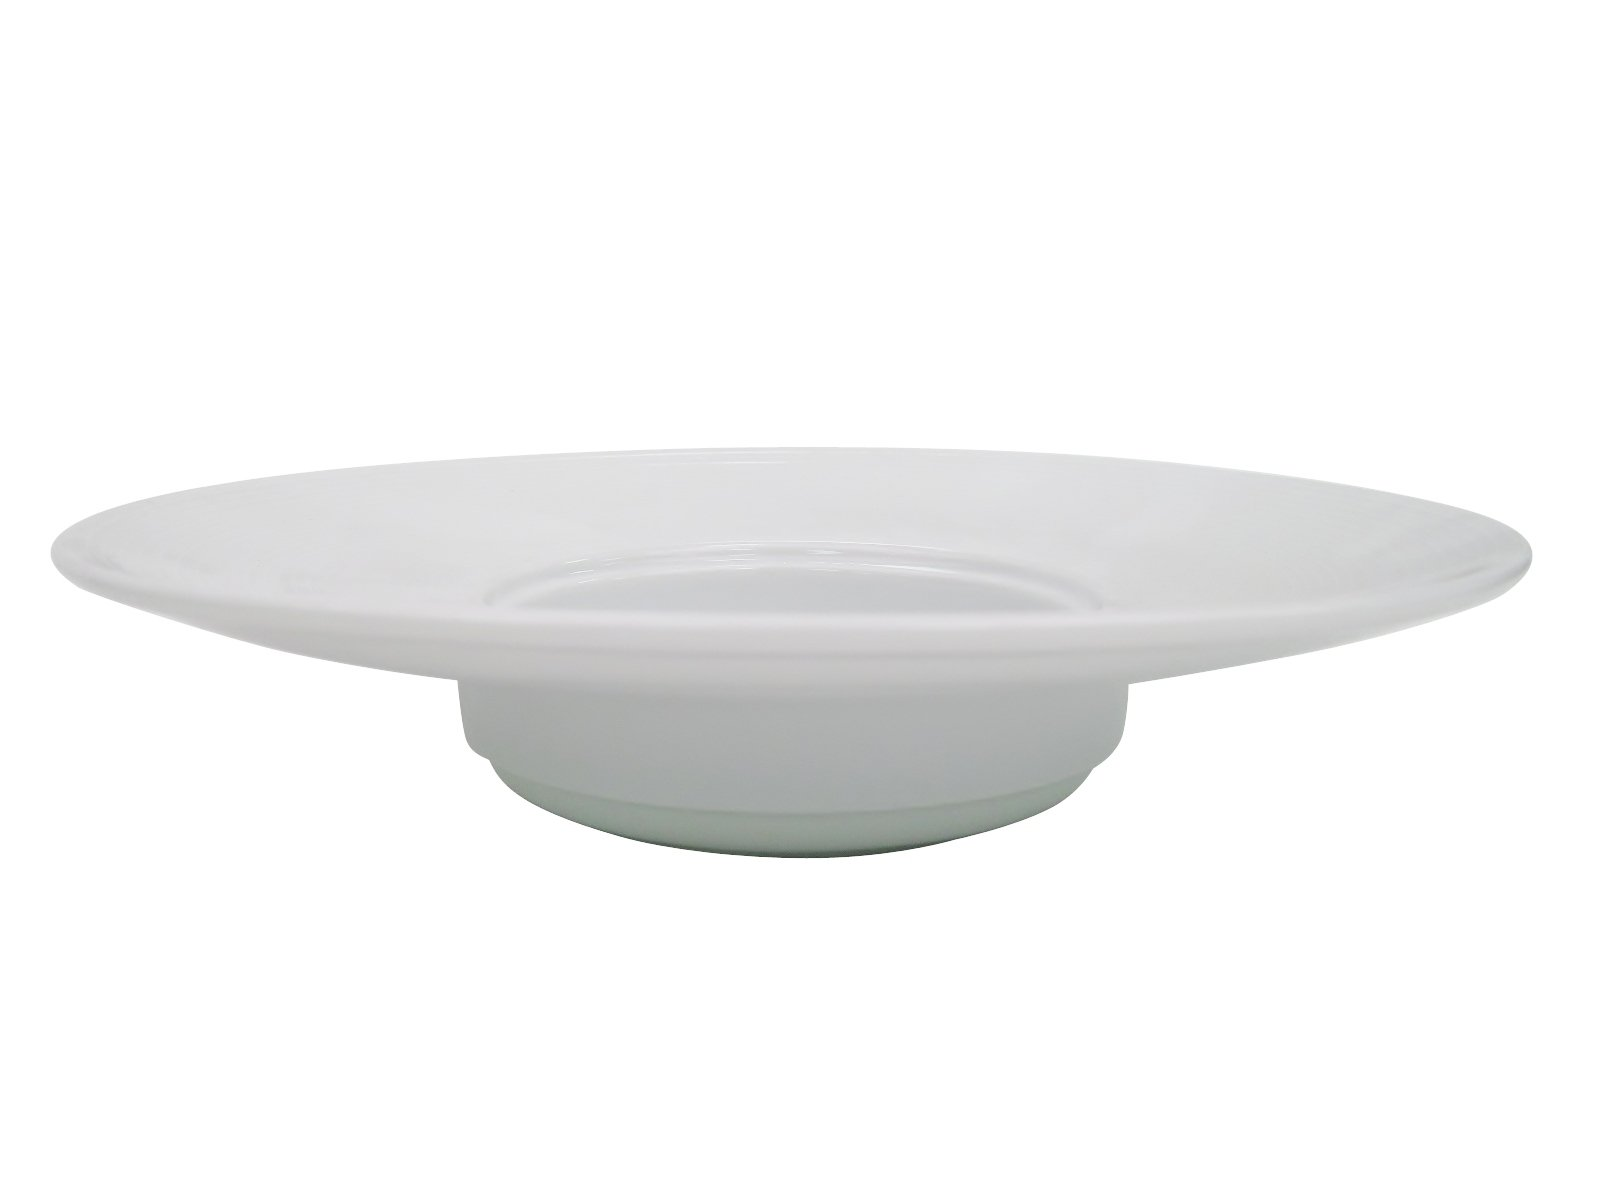 CAC China HMY-123 11 3/4-Inch Harmony Porcelain Wide Rim Pasta Bowl, 12-Ounce, White, Box of 12